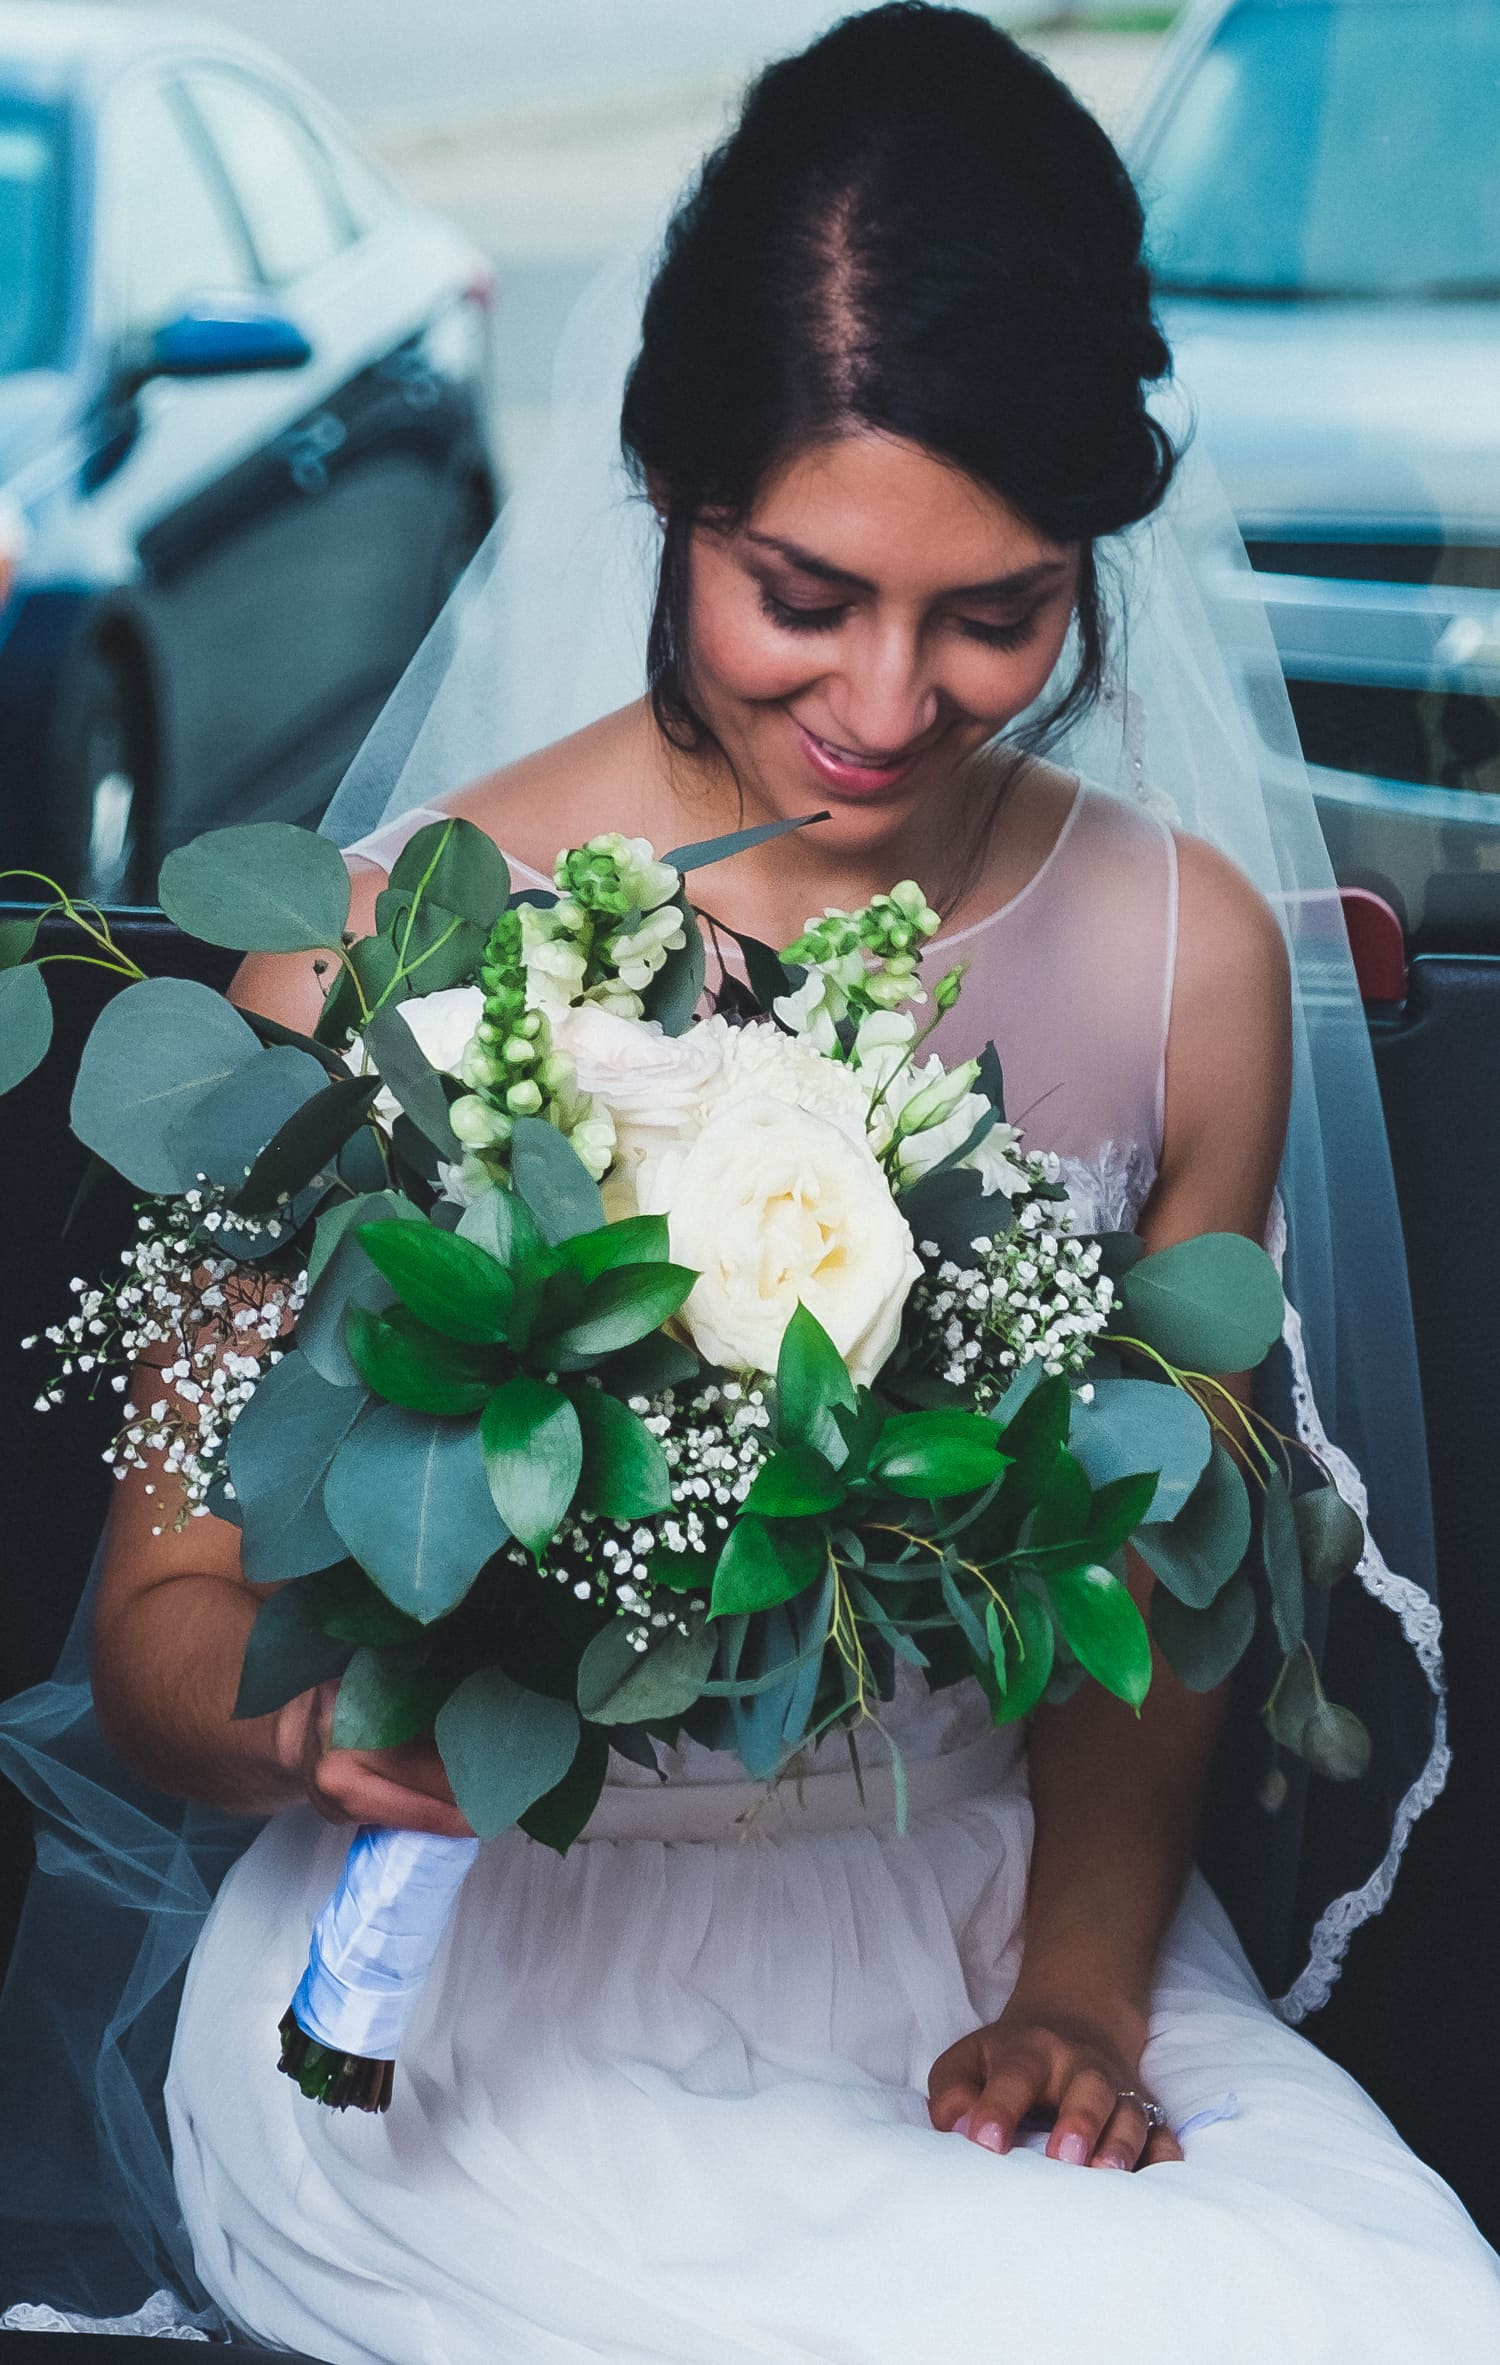 Isabel Orozco Moore holding fiftyflowers.com wedding bouquet. // Photo by Leia Smethurst